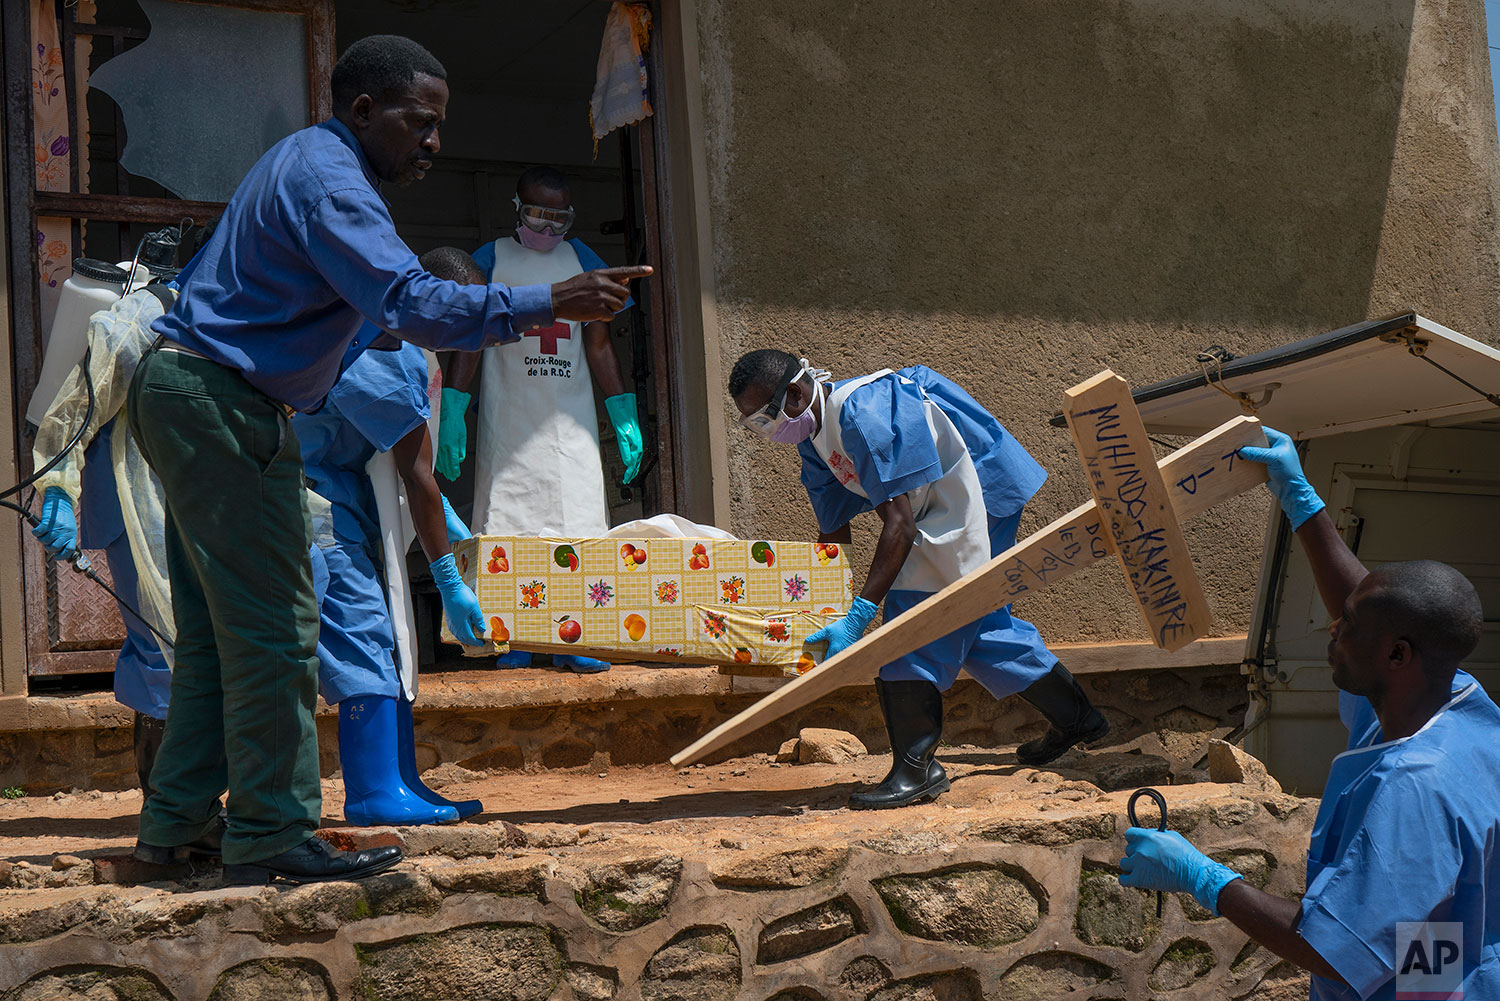 In this July 14, 2019 photo, Red Cross workers carry the remains of 16-month-old Muhindo Kakinire  rom the morgue into a truck as health workers disinfect the area in Beni, Congo DRC. (AP Photo/Jerome Delay)